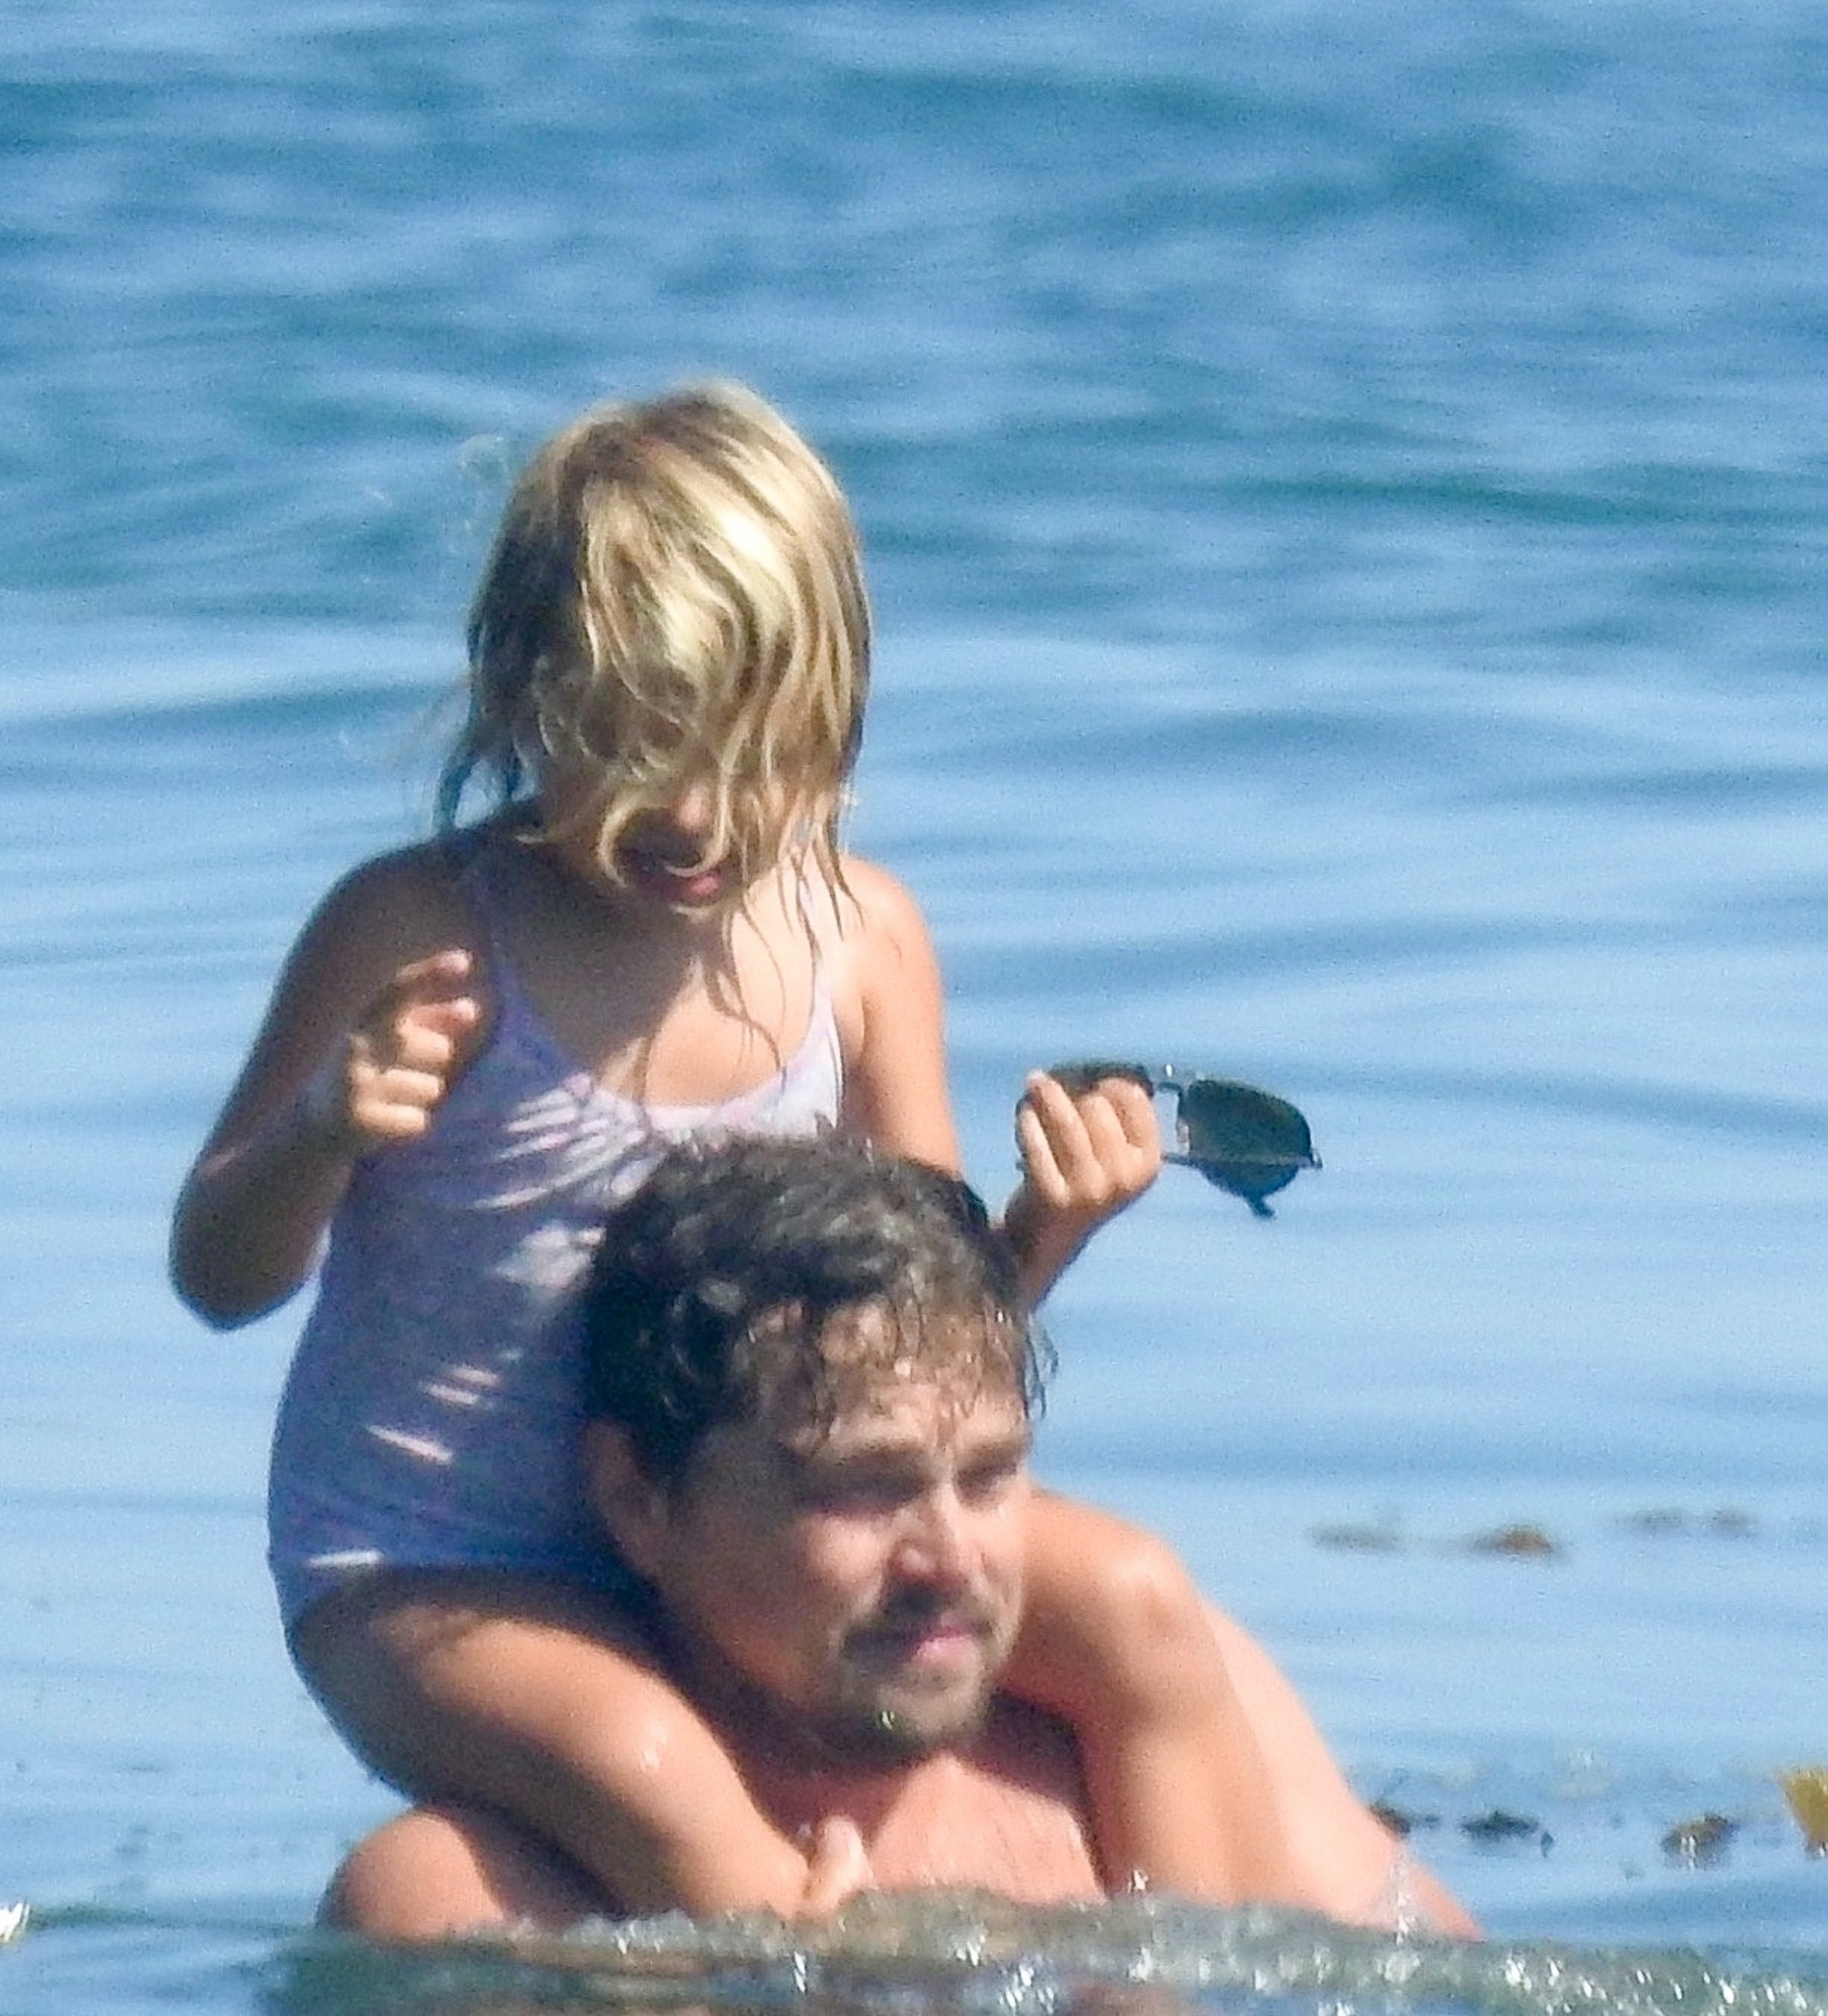 Malibu, CA  - *EXCLUSIVE*  - Leonardo DiCaprio cools off in the ocean while enjoying a fun summer day at the beach with his family in Malibu.  BACKGRID USA 14 AUGUST 2020,Image: 552613138, License: Rights-managed, Restrictions: , Model Release: no, Credit line: RMBI / BACKGRID / Backgrid USA / Profimedia